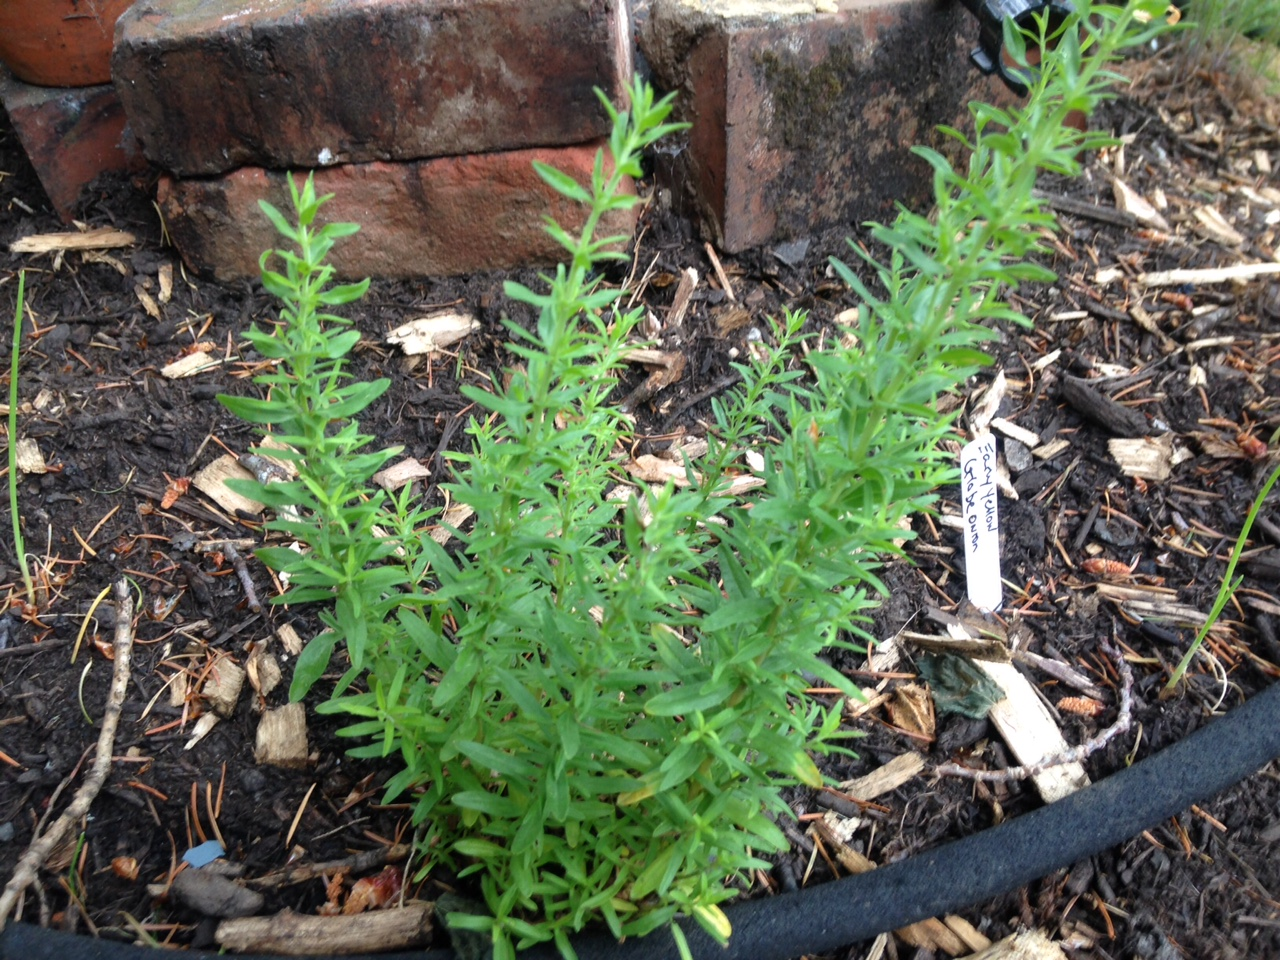 H. officinalis growing in my herb spiral (this one was a birthday gift this spring)